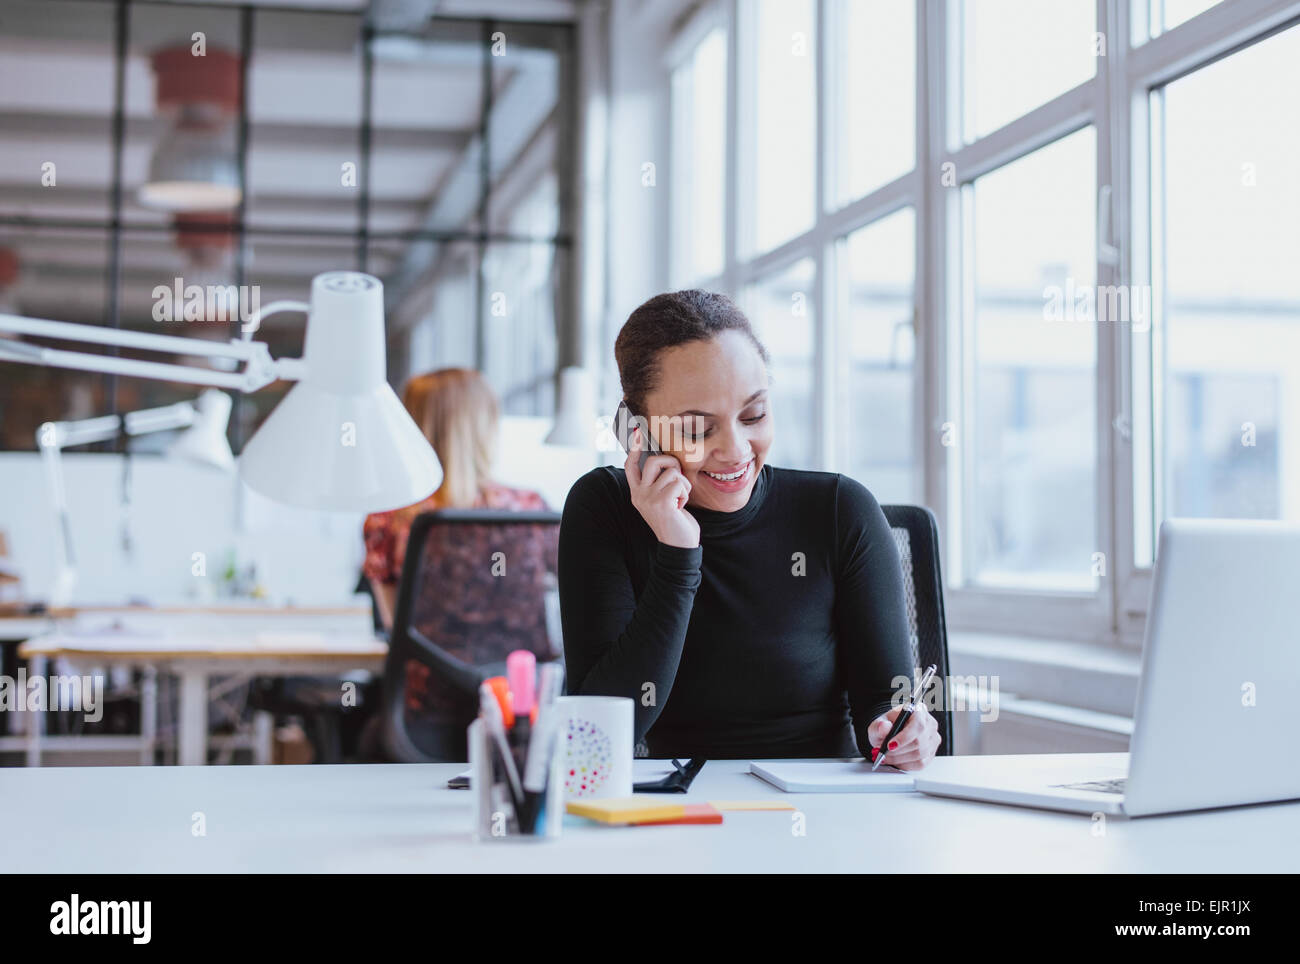 Happy young woman taking notes while talking on mobile phone. African woman working at her desk answering a phone - Stock Image